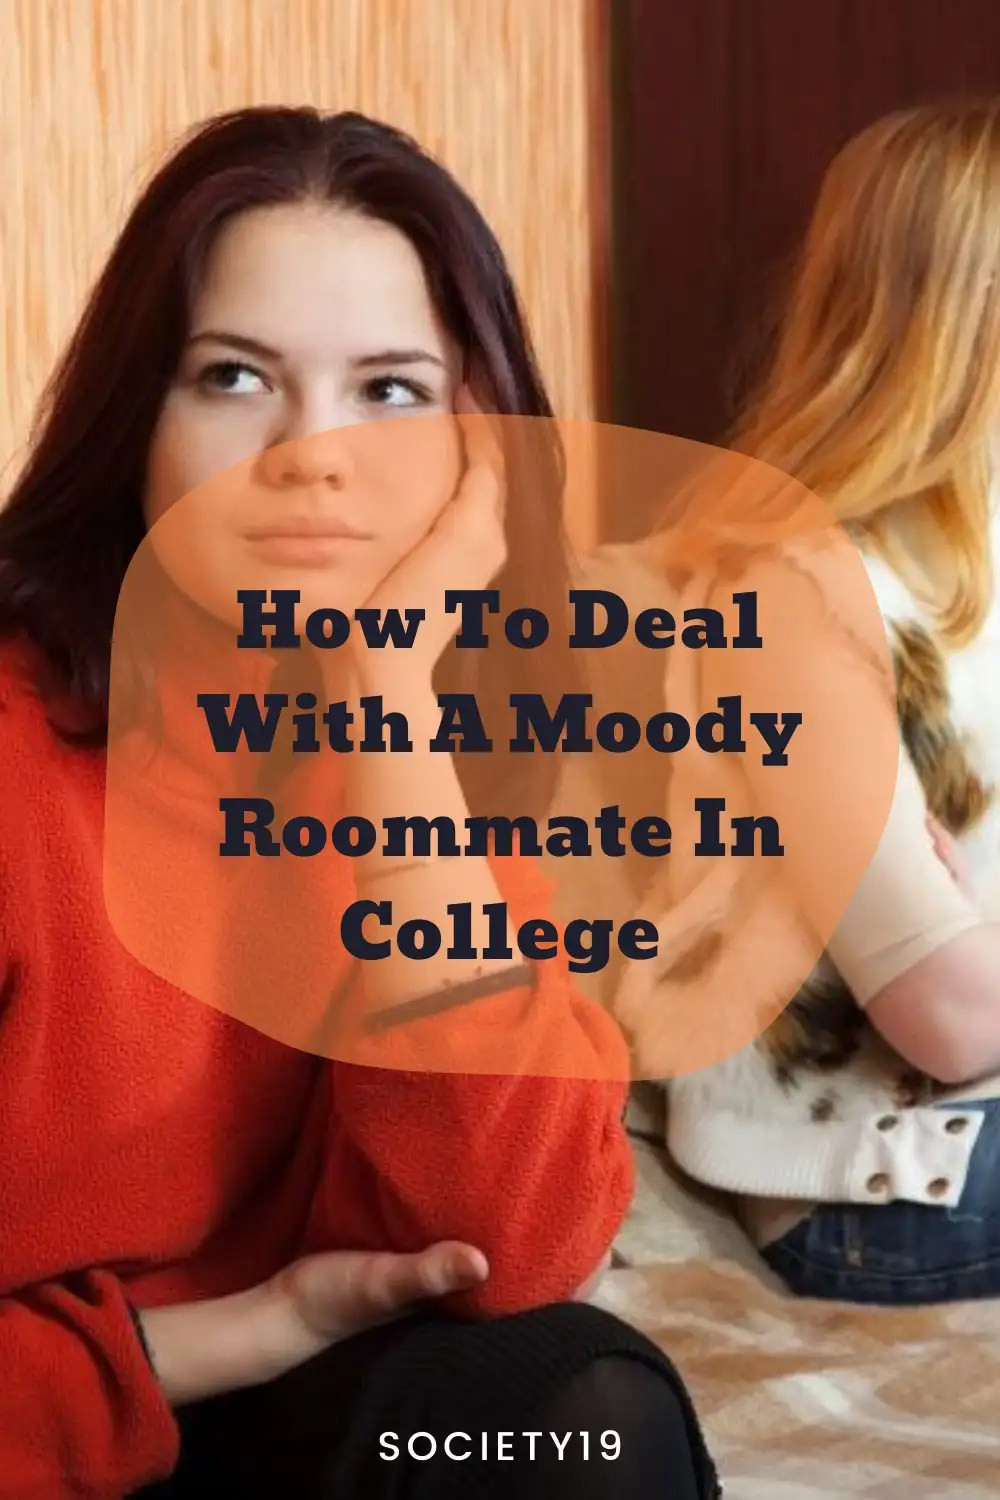 How To Deal With A Moody Roommate In College